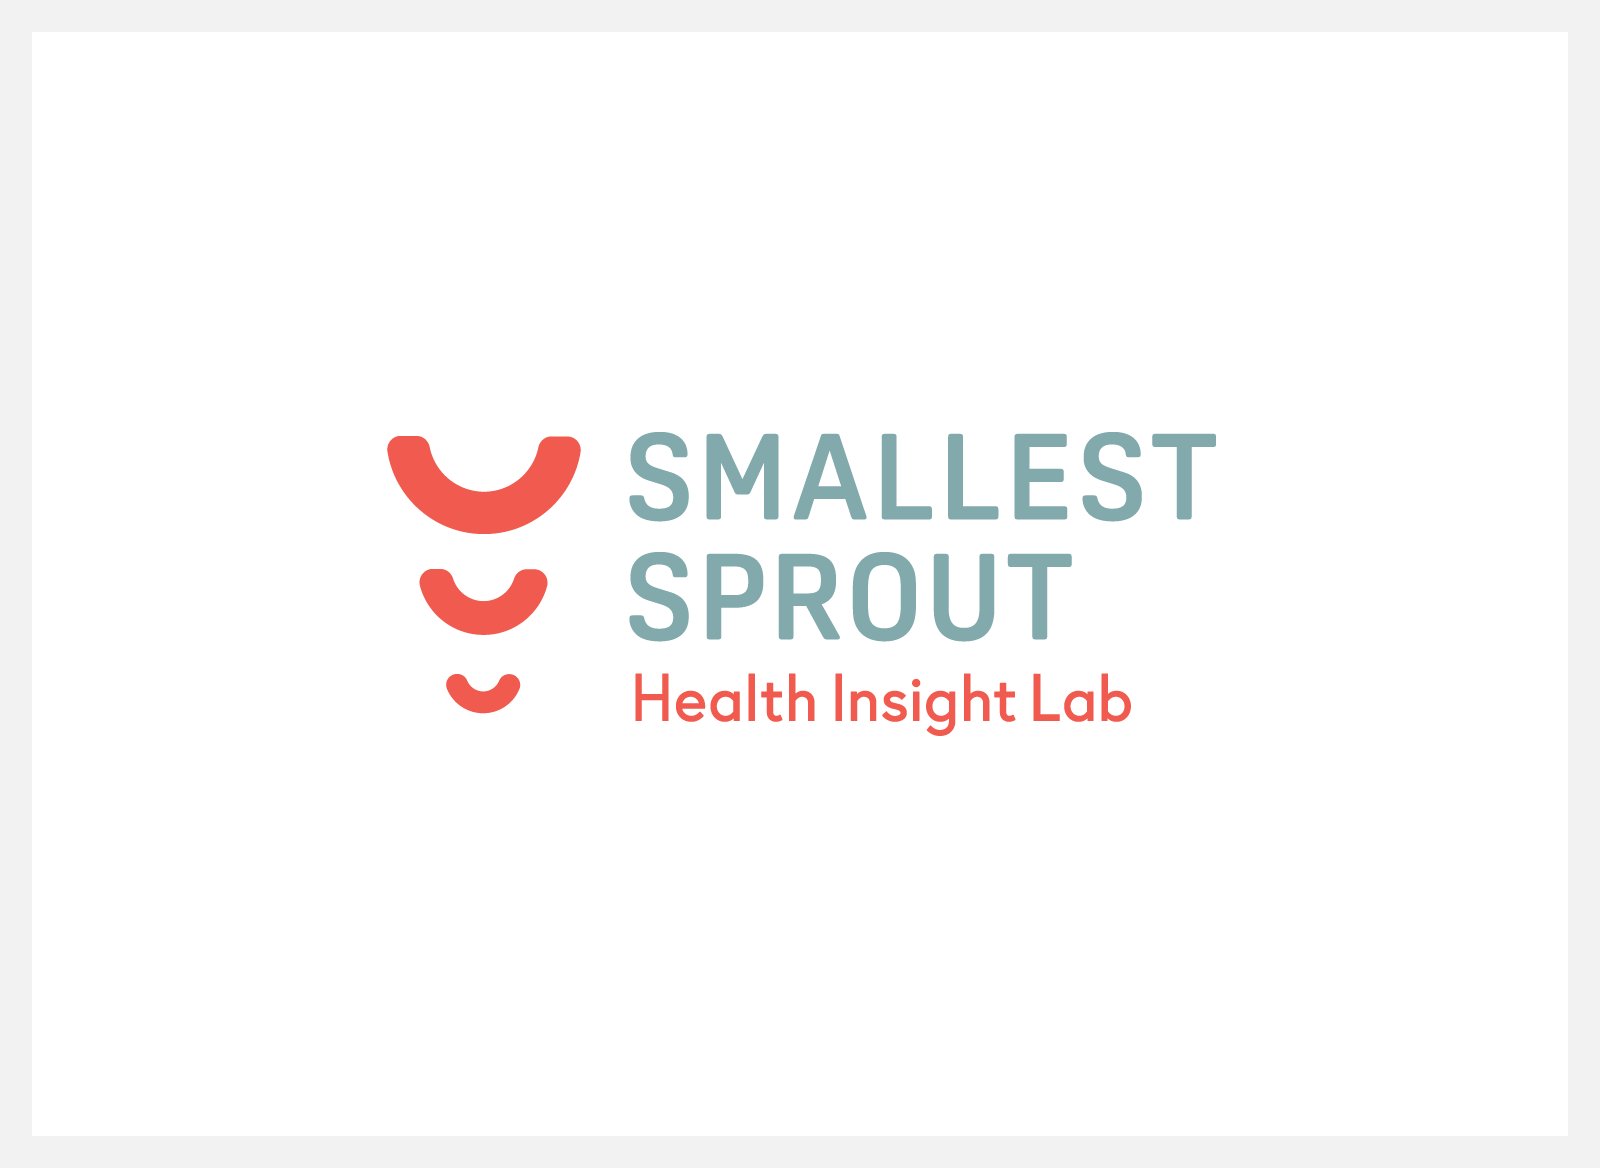 jkdc_healthinsight-program-smallestsprout.png